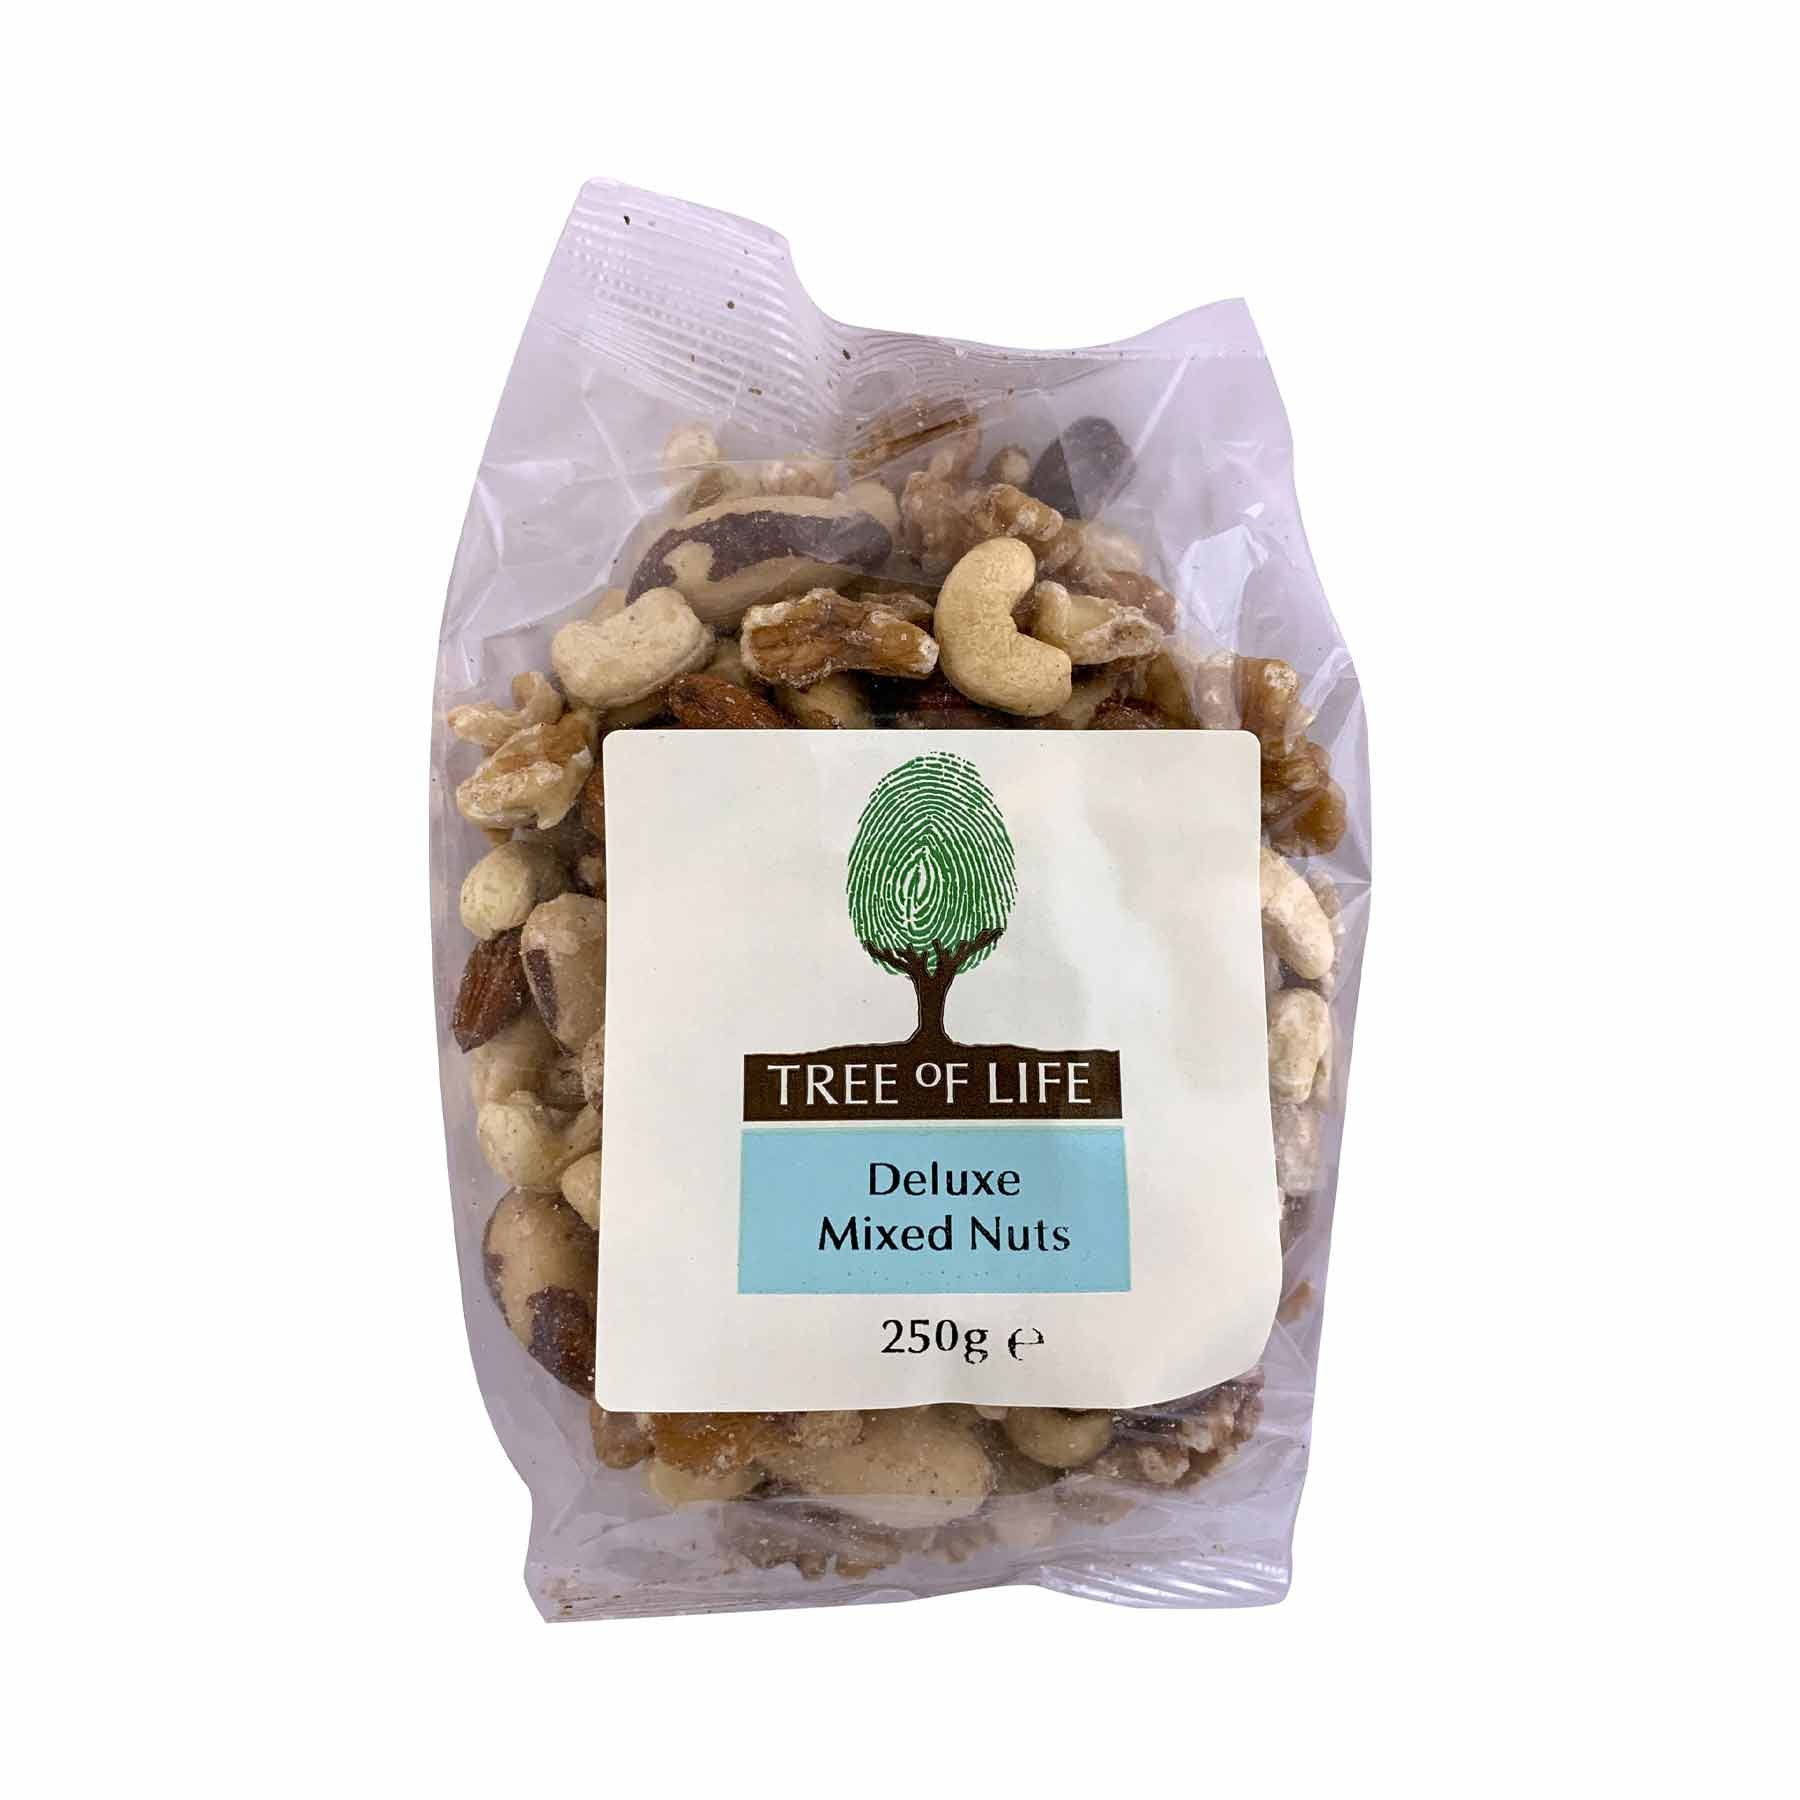 Packshot - Deluxe Mixed Nuts by Tree of Life